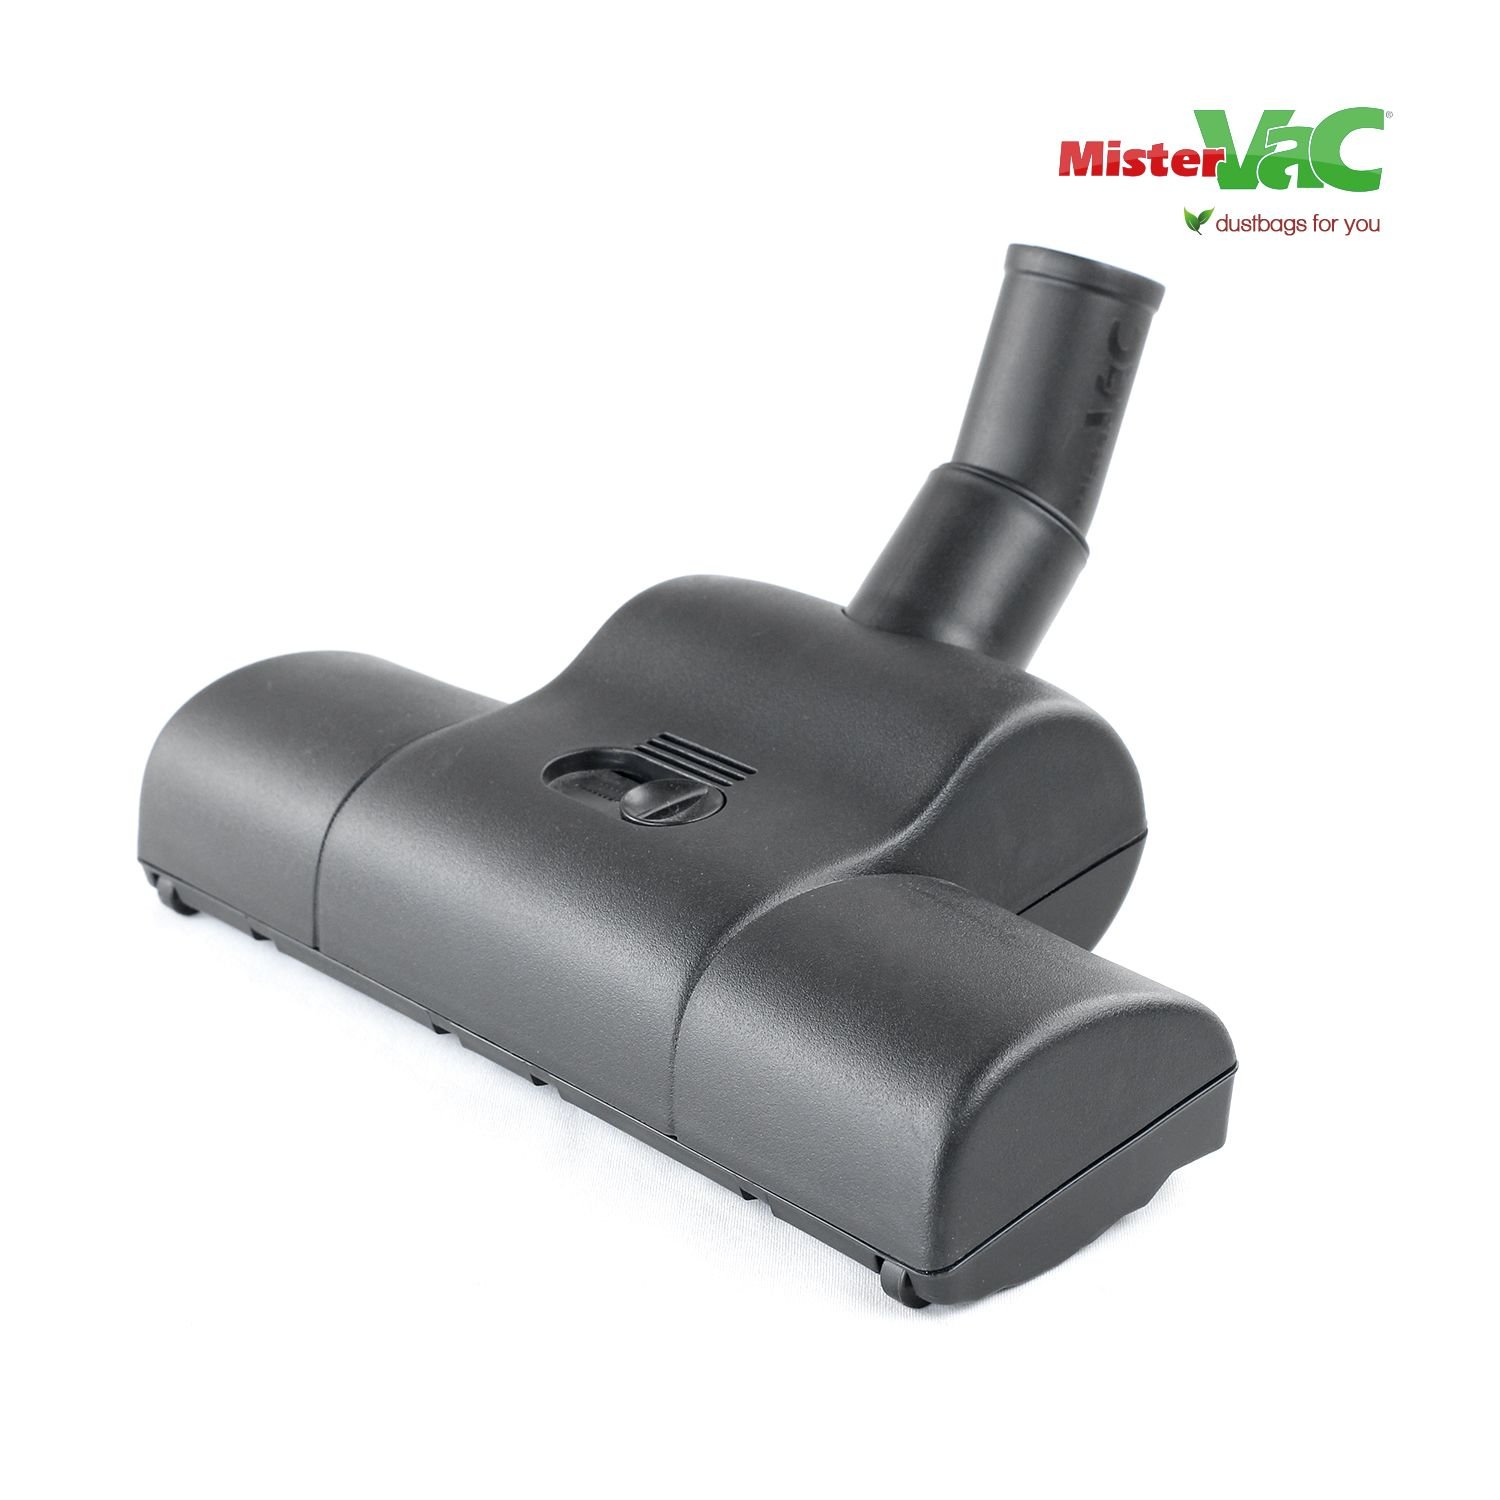 TACKlife PVC01A Turbo Floor Nozzle Turbo Brush for Wet and Dry Vacuum Cleaners